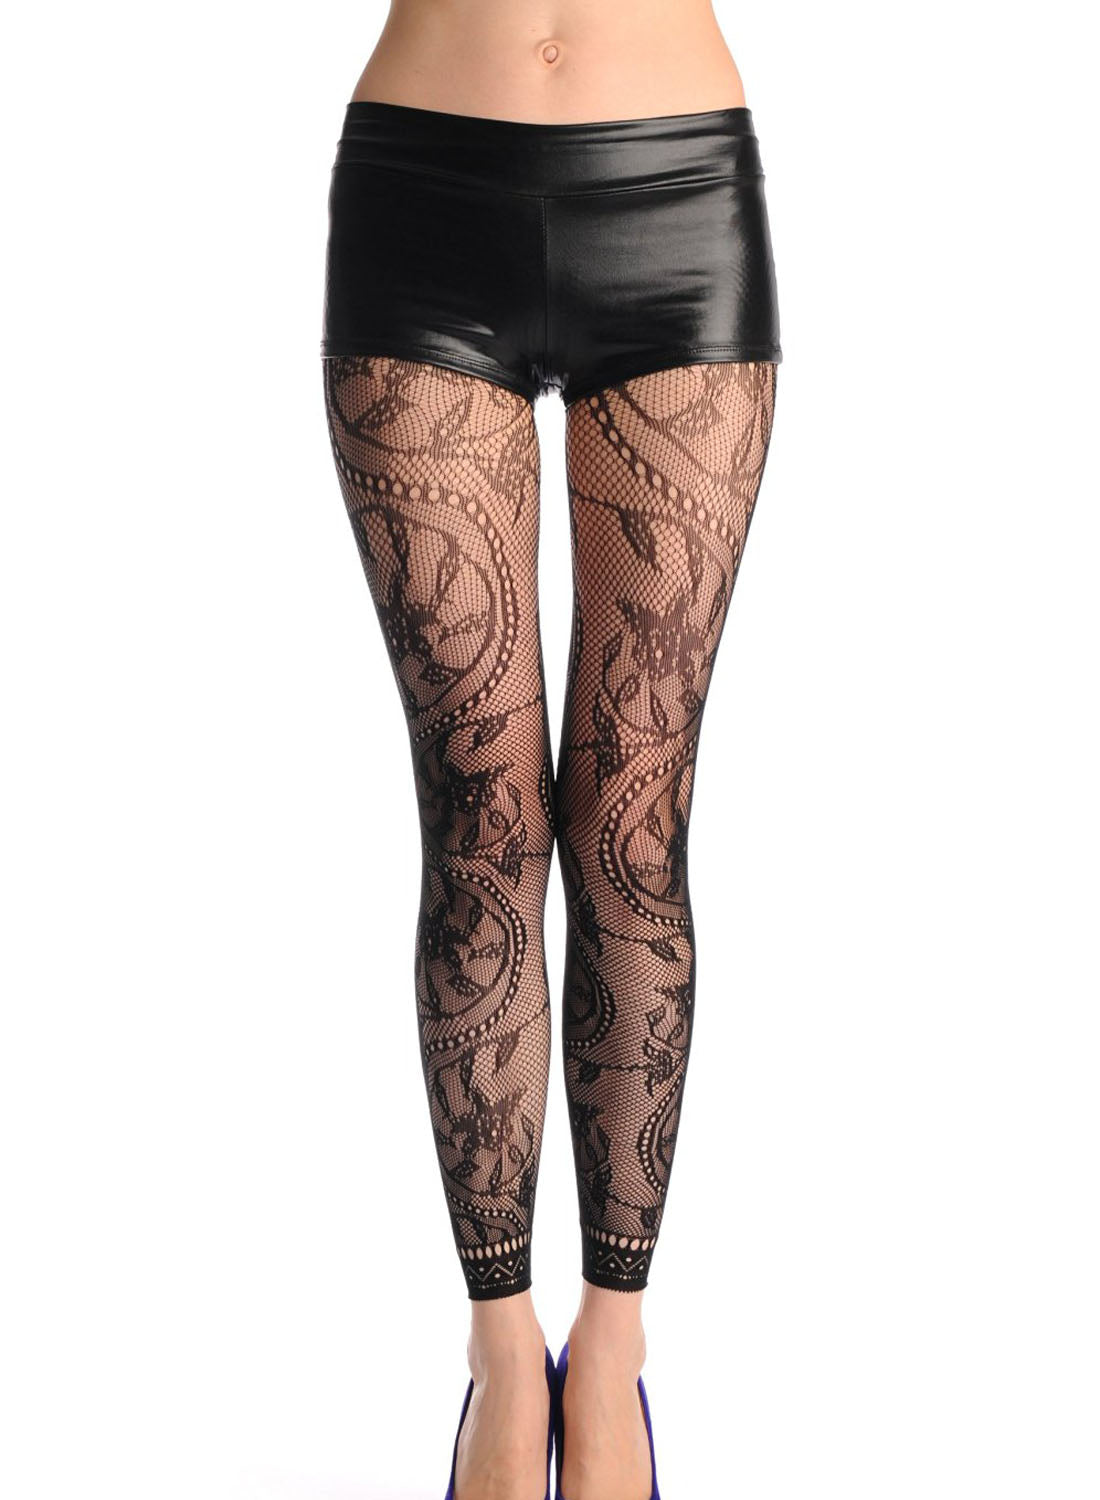 Flower Pattern High Waist Footless Lace Trim Pantyhose - Online Women PANTYHOSE